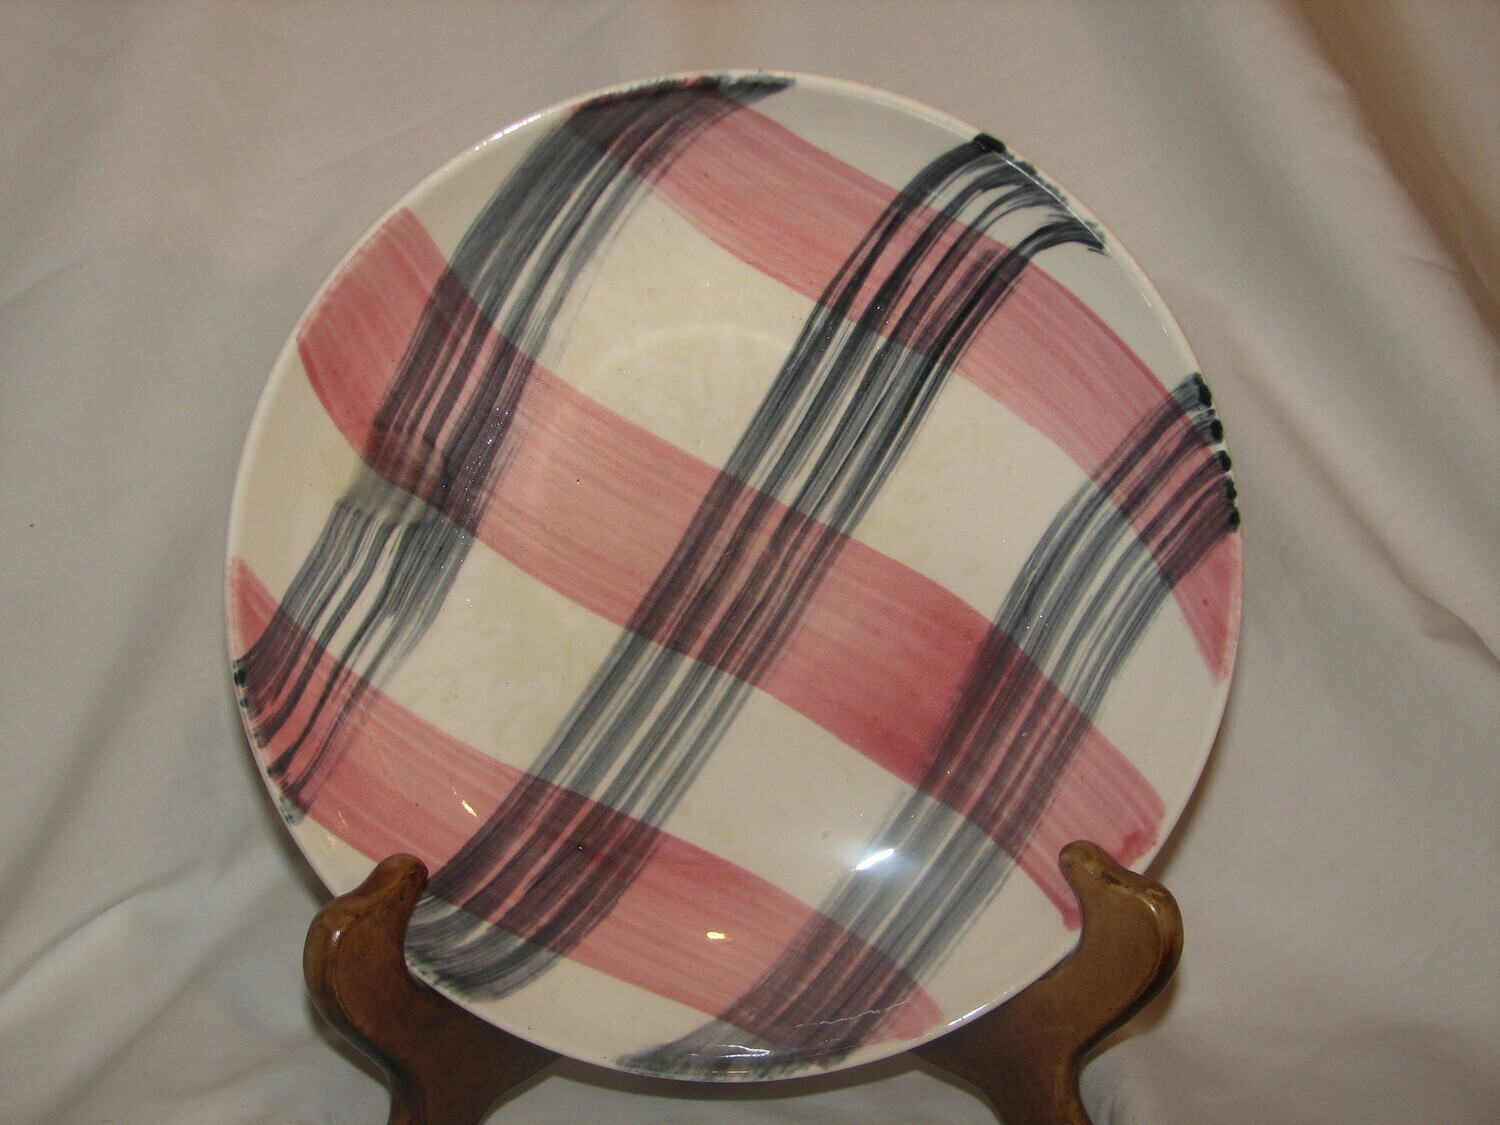 Stetson Cereal Bowl, Scots Clan - Pink/Charcoal